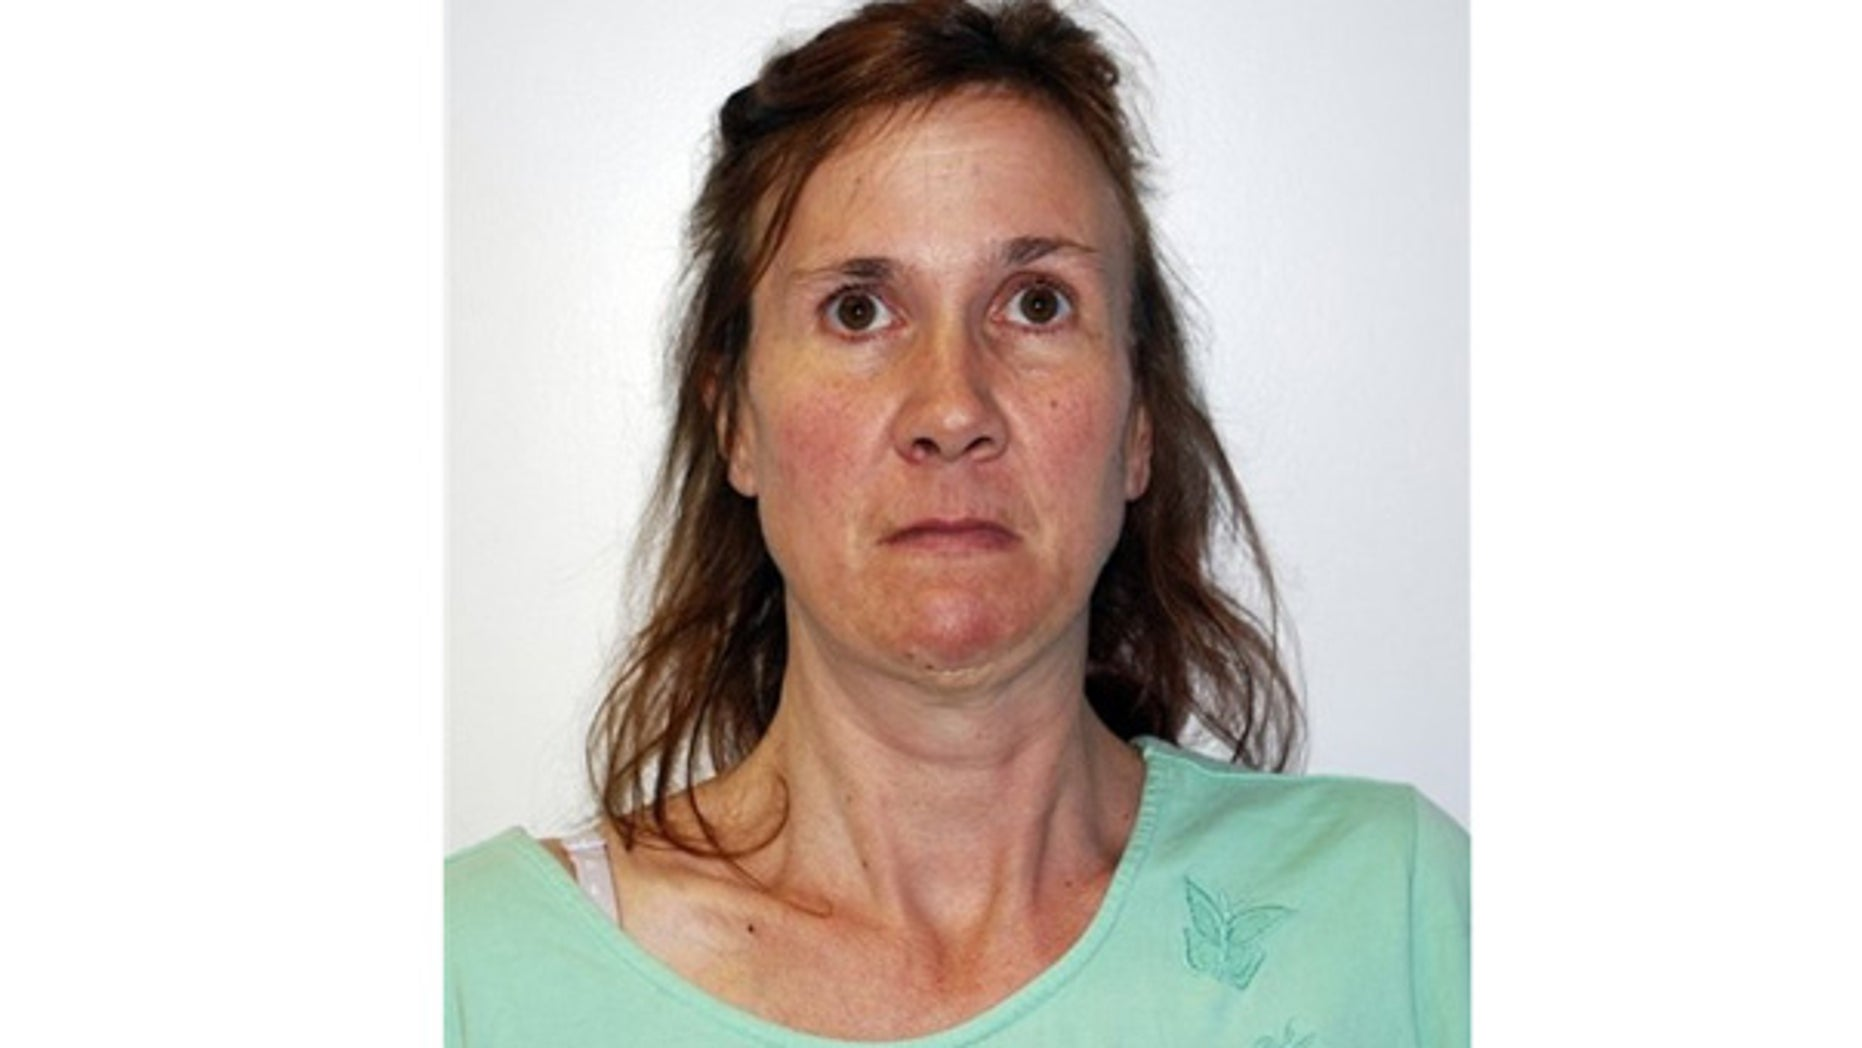 This undated photo released by the Berks County Sheriff's Department shows Michele Kalina.